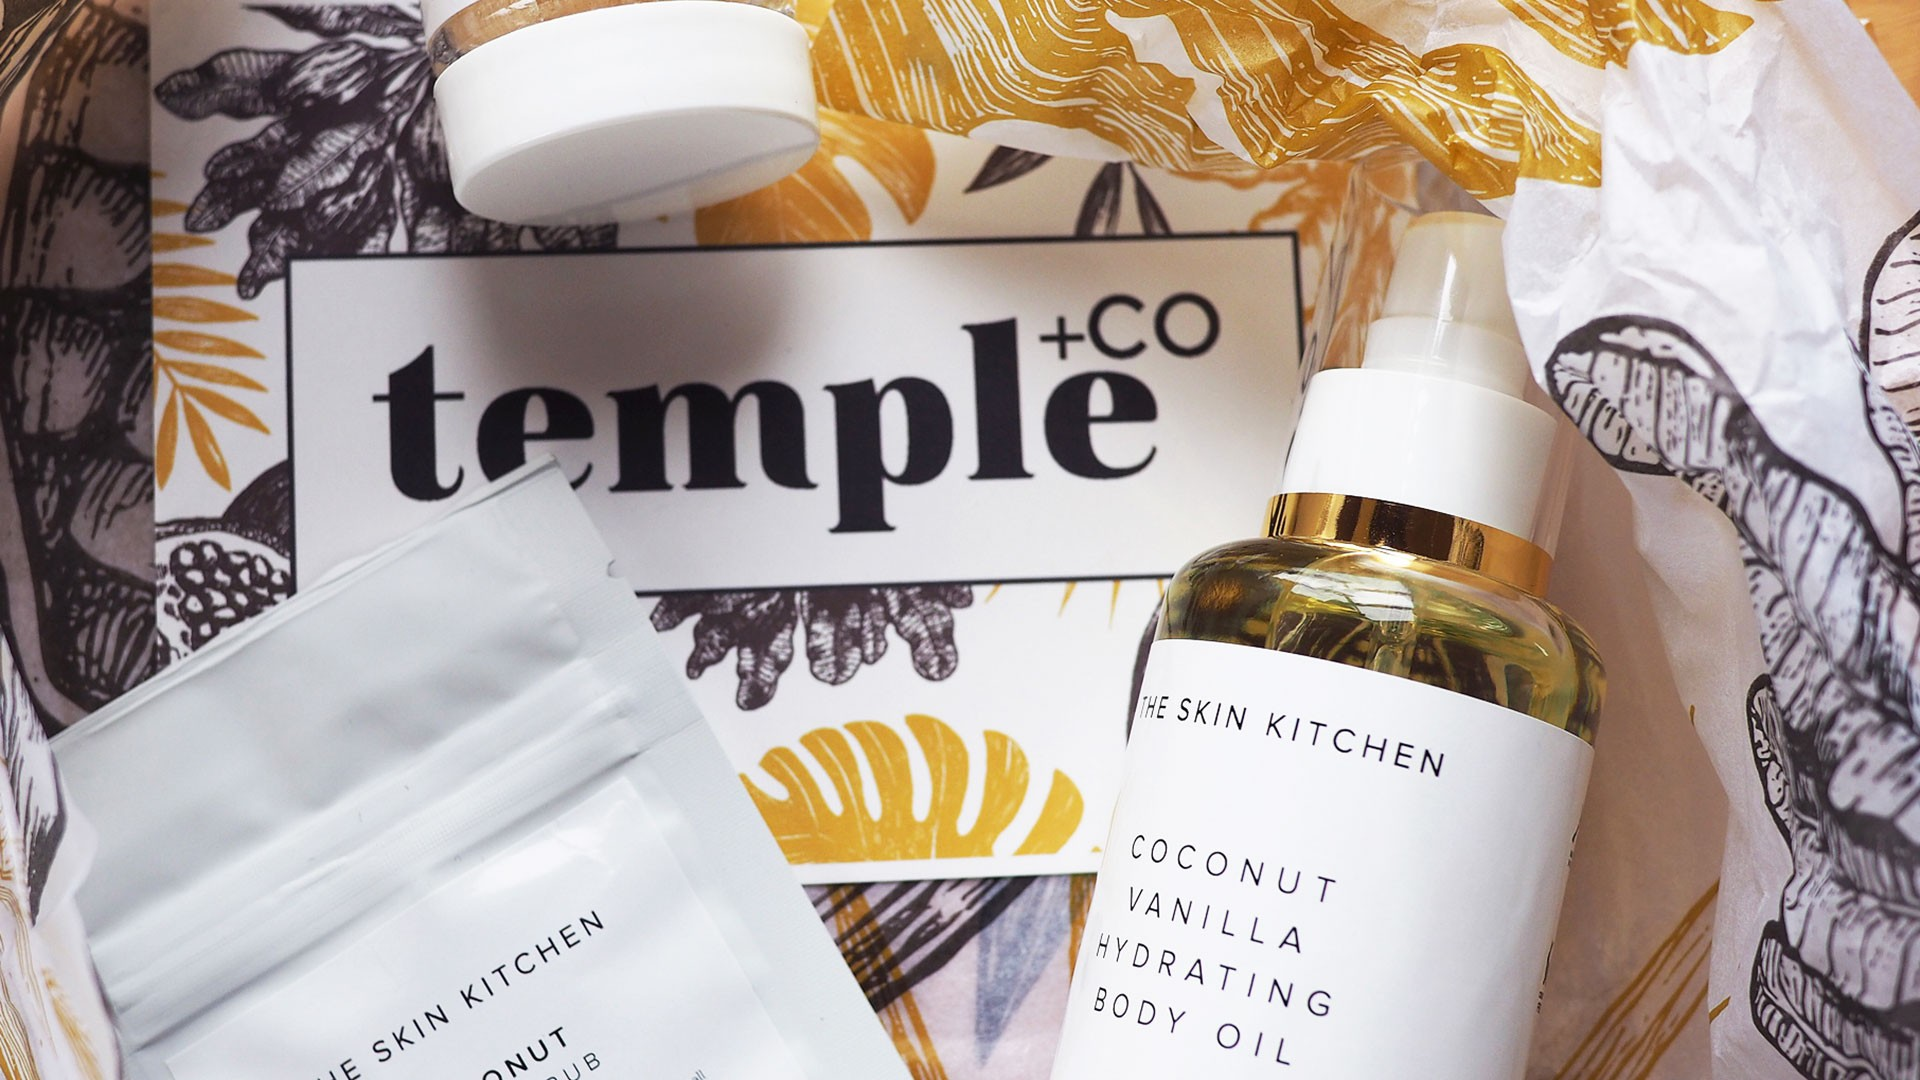 Temple+Co branding, packaging and products